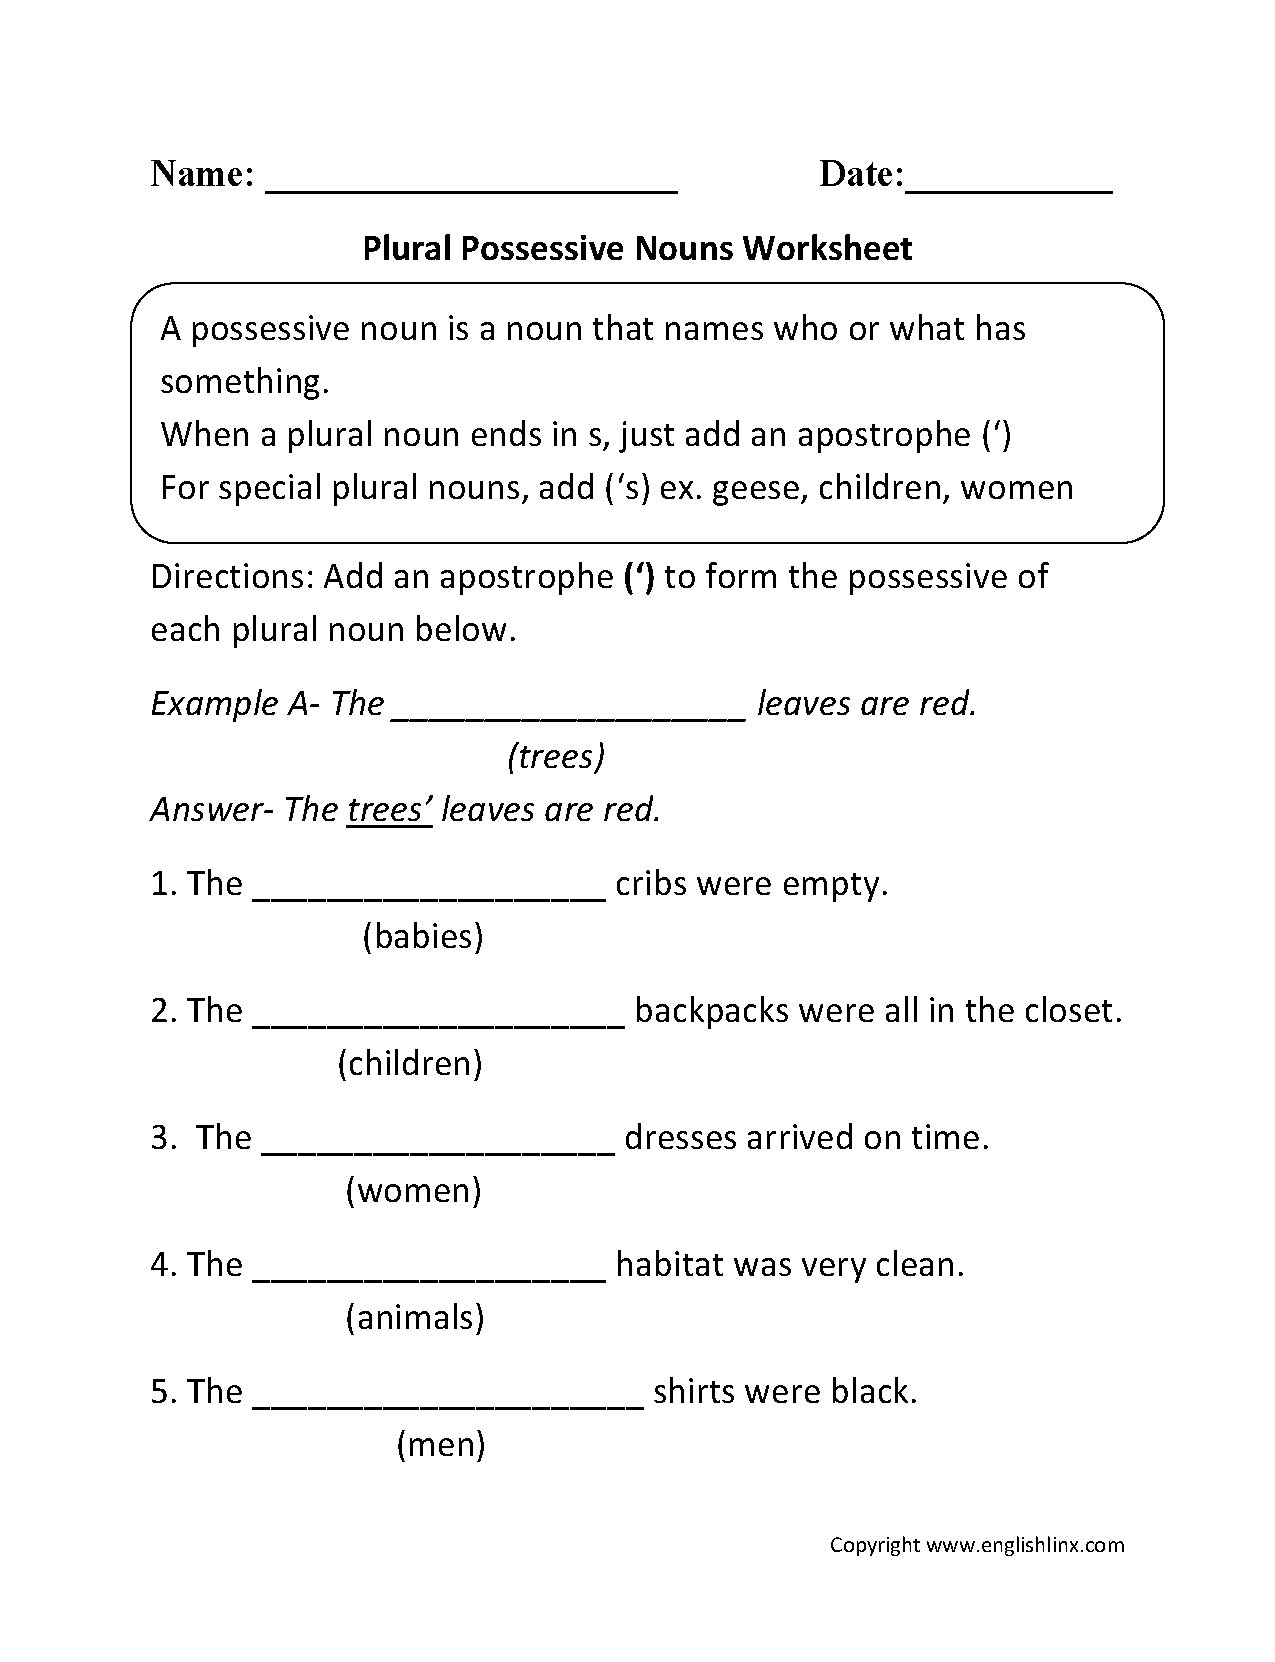 Weirdmailus  Remarkable Nouns Worksheets  Possessive Nouns Worksheets With Interesting Possessive Nouns Worksheets With Appealing Multiplication Worksheets For Rd Graders Also Snowflake Math Worksheets In Addition Suze Orman Worksheets And Printable Wedding Budget Worksheet As Well As Printable Worksheets For  Year Olds Additionally First Grade Adjectives Worksheet From Englishlinxcom With Weirdmailus  Interesting Nouns Worksheets  Possessive Nouns Worksheets With Appealing Possessive Nouns Worksheets And Remarkable Multiplication Worksheets For Rd Graders Also Snowflake Math Worksheets In Addition Suze Orman Worksheets From Englishlinxcom